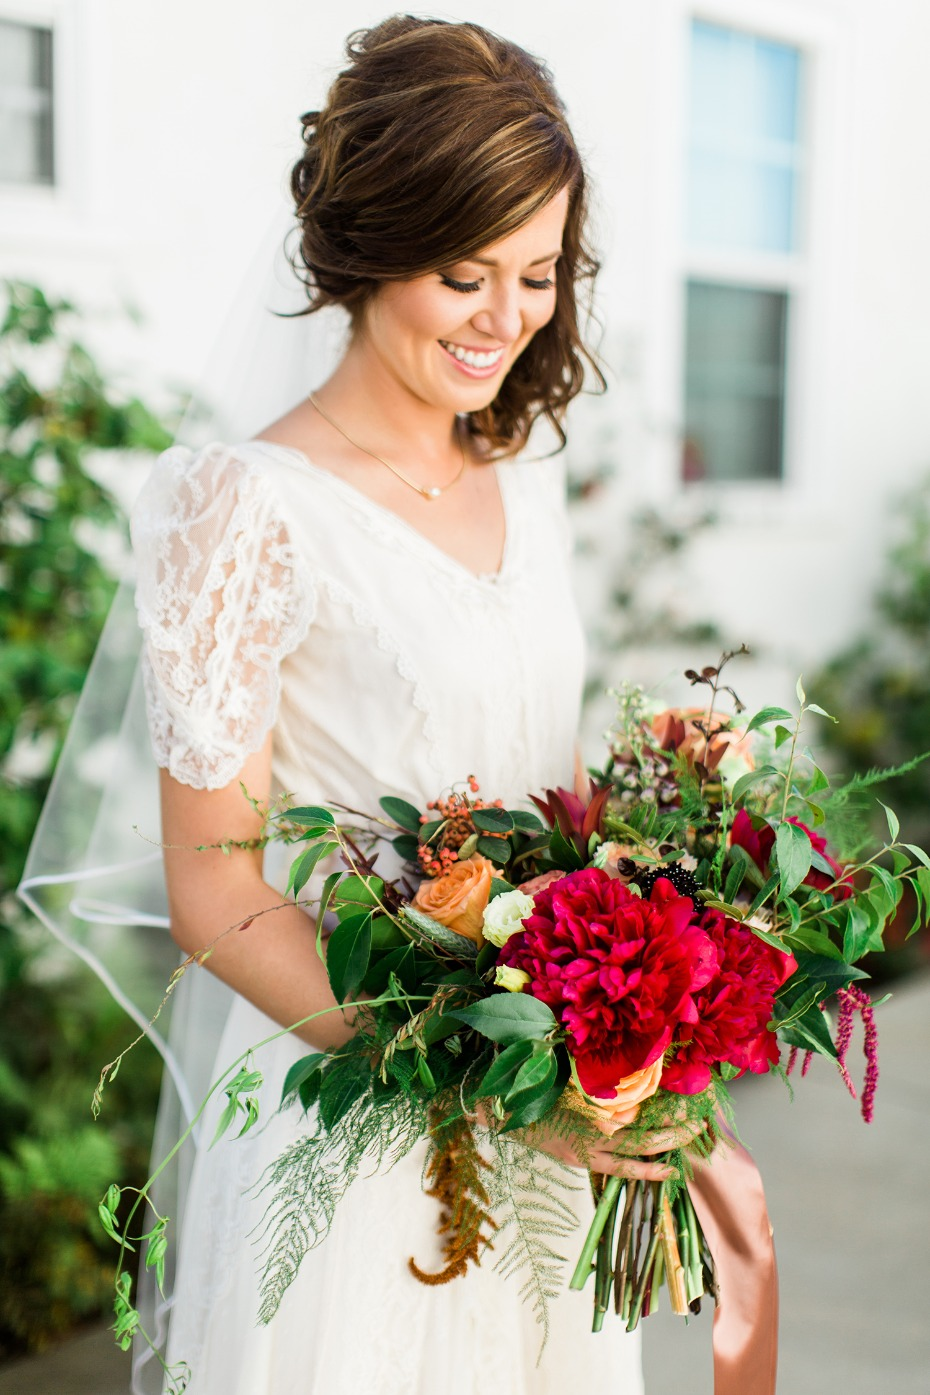 classic bridal style with a few modern twists